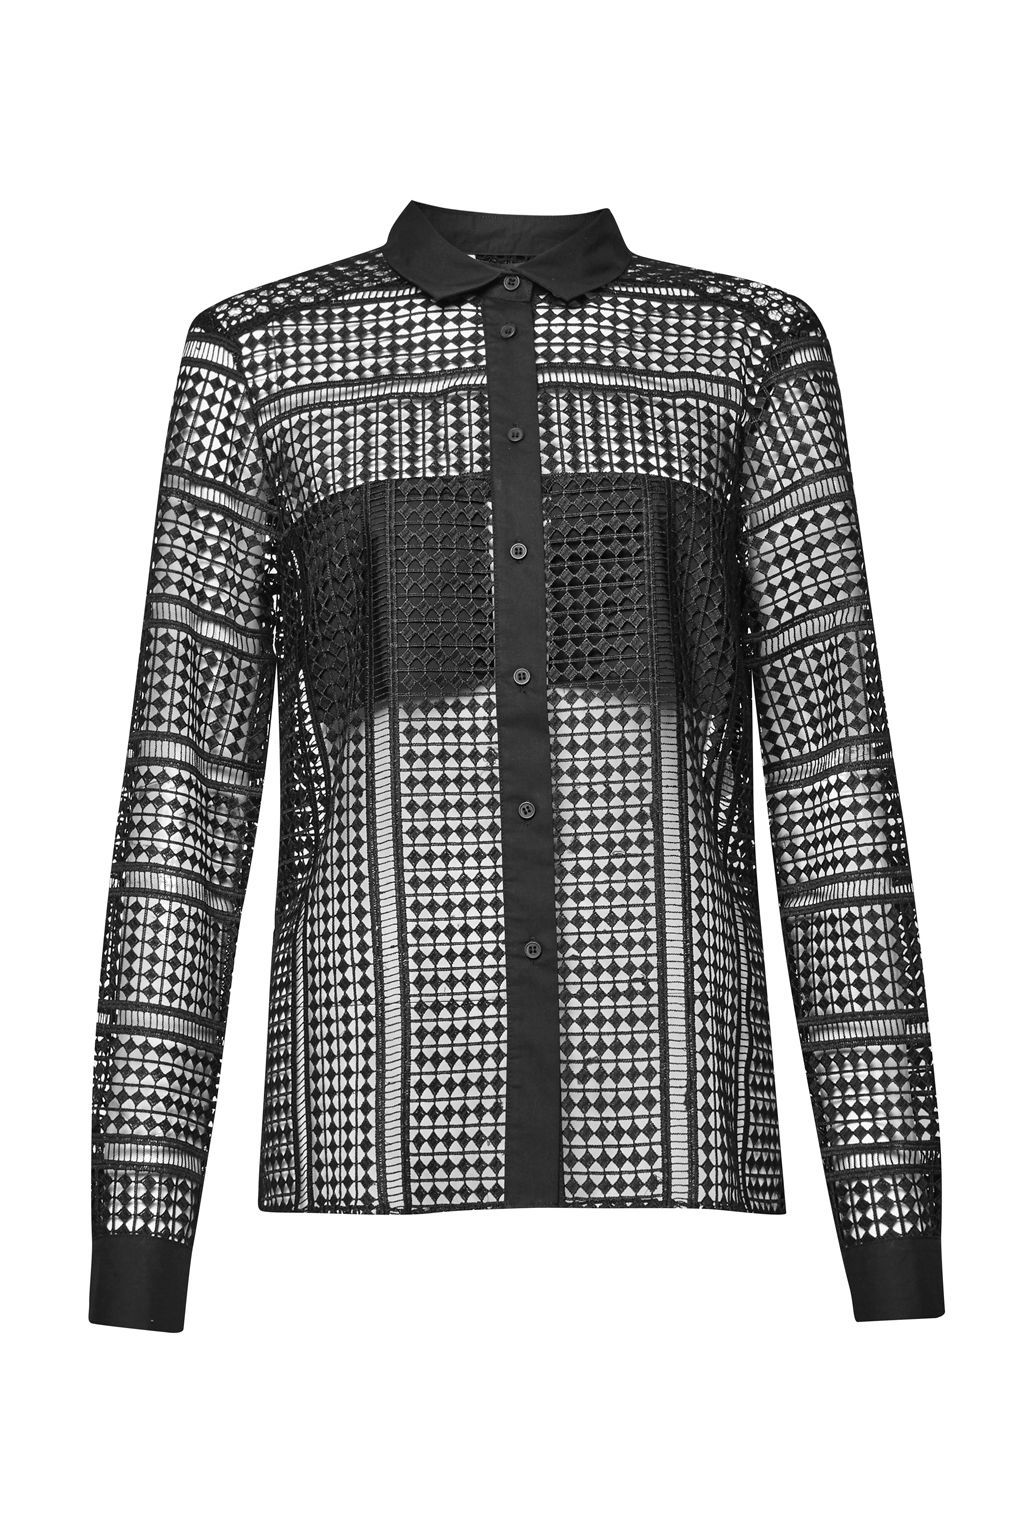 Summer Cage Laser Cut Shirt, Black - neckline: shirt collar/peter pan/zip with opening; pattern: plain; style: shirt; predominant colour: black; occasions: evening; length: standard; fibres: polyester/polyamide - 100%; fit: body skimming; sleeve length: long sleeve; sleeve style: standard; texture group: lace; pattern type: fabric; season: a/w 2016; wardrobe: event